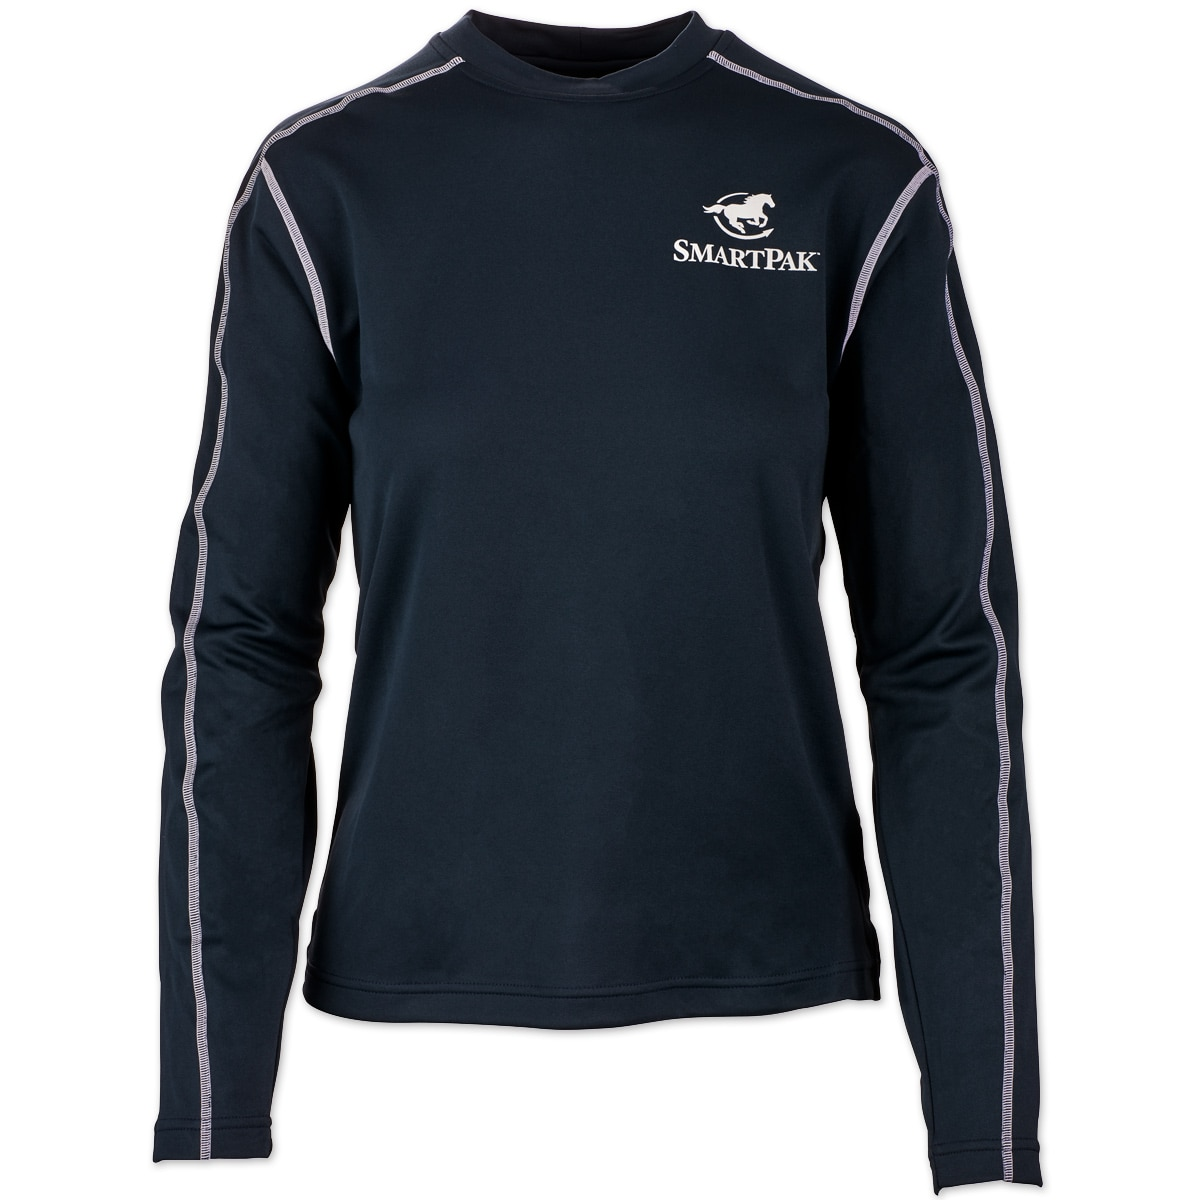 SmartPak Long Sleeve Wicking Shirt